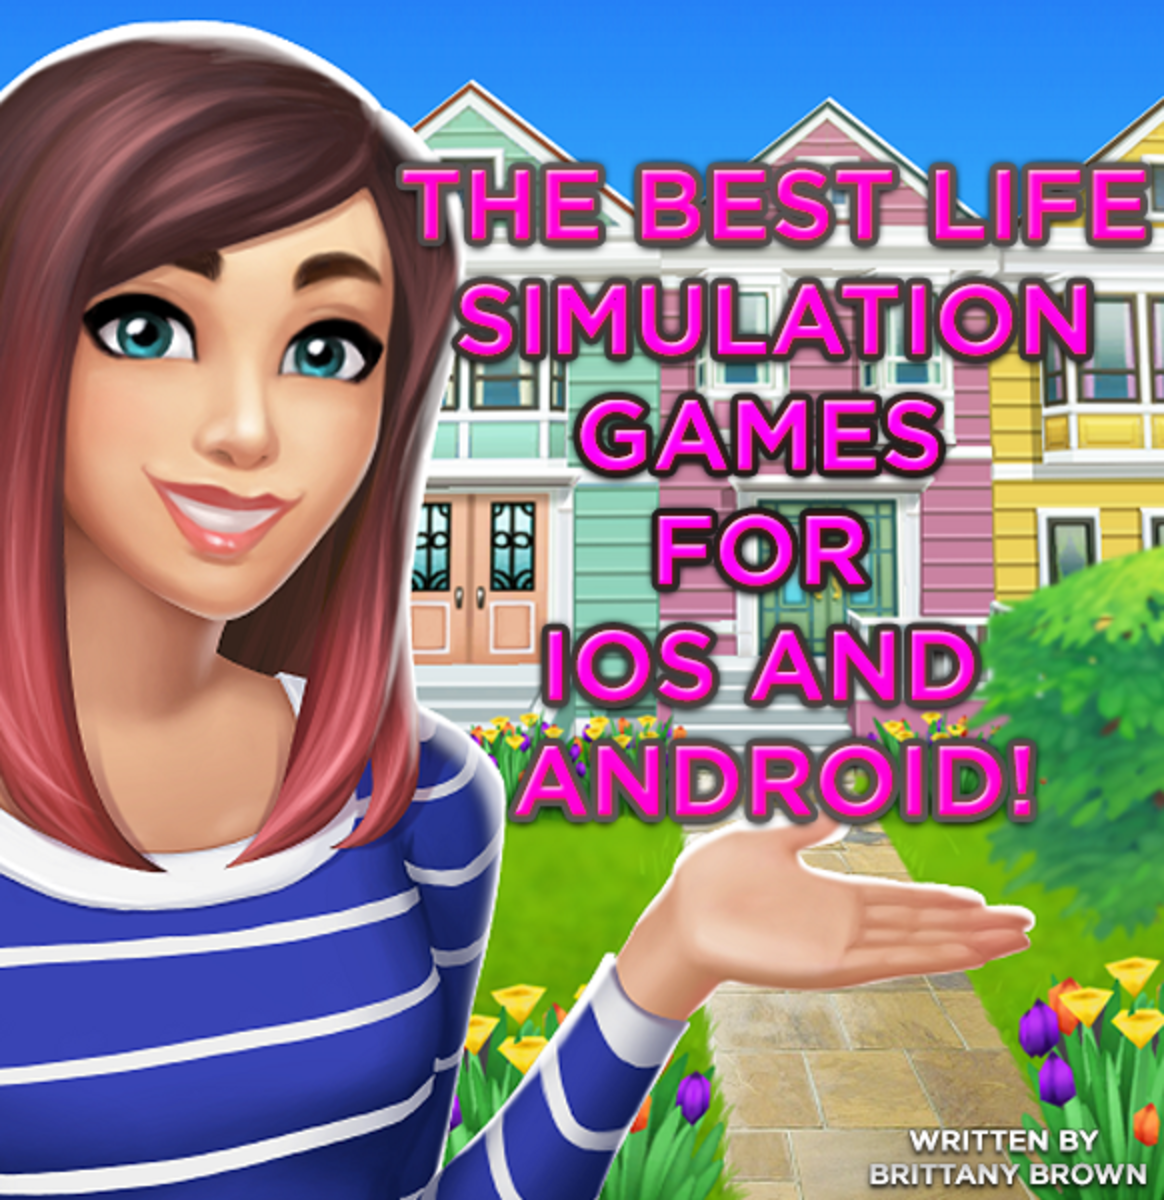 The Best Life Simulation Games for iOS and Android!